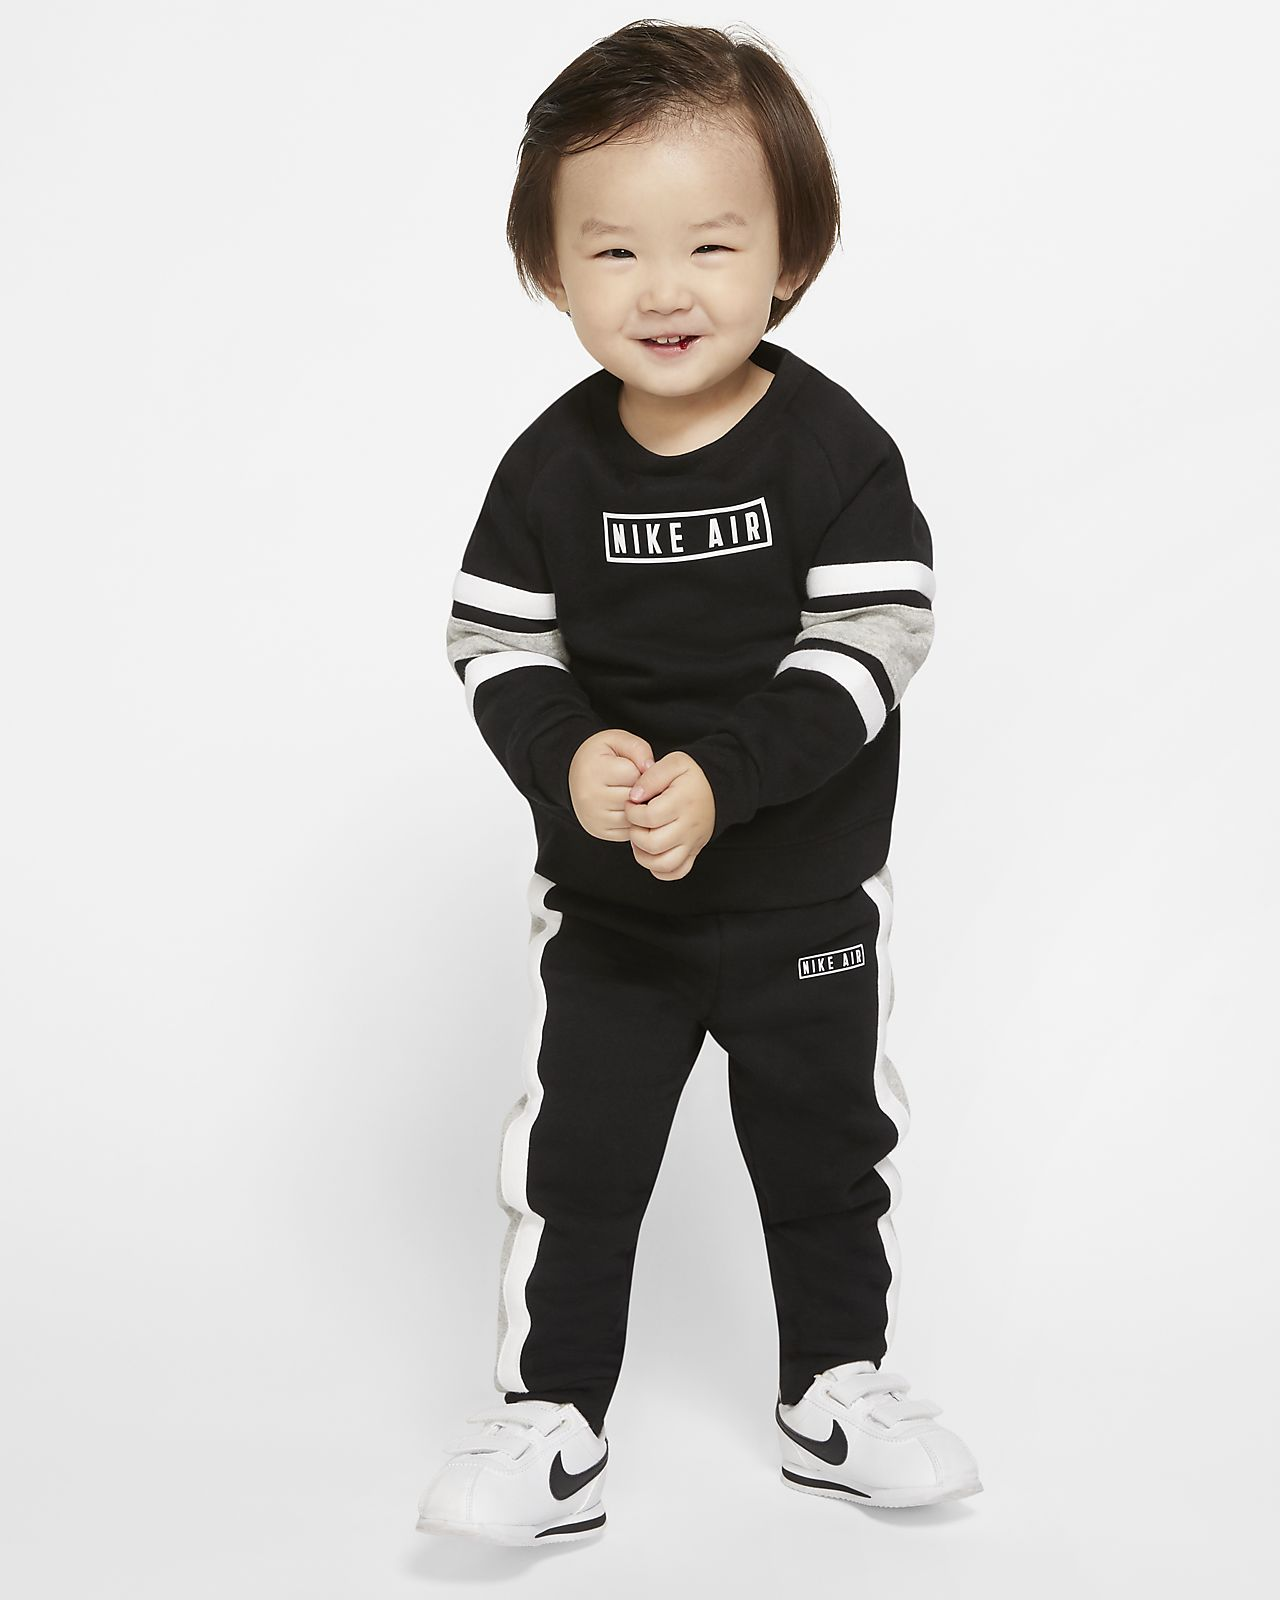 Nike Air Baby Crew and Joggers Set